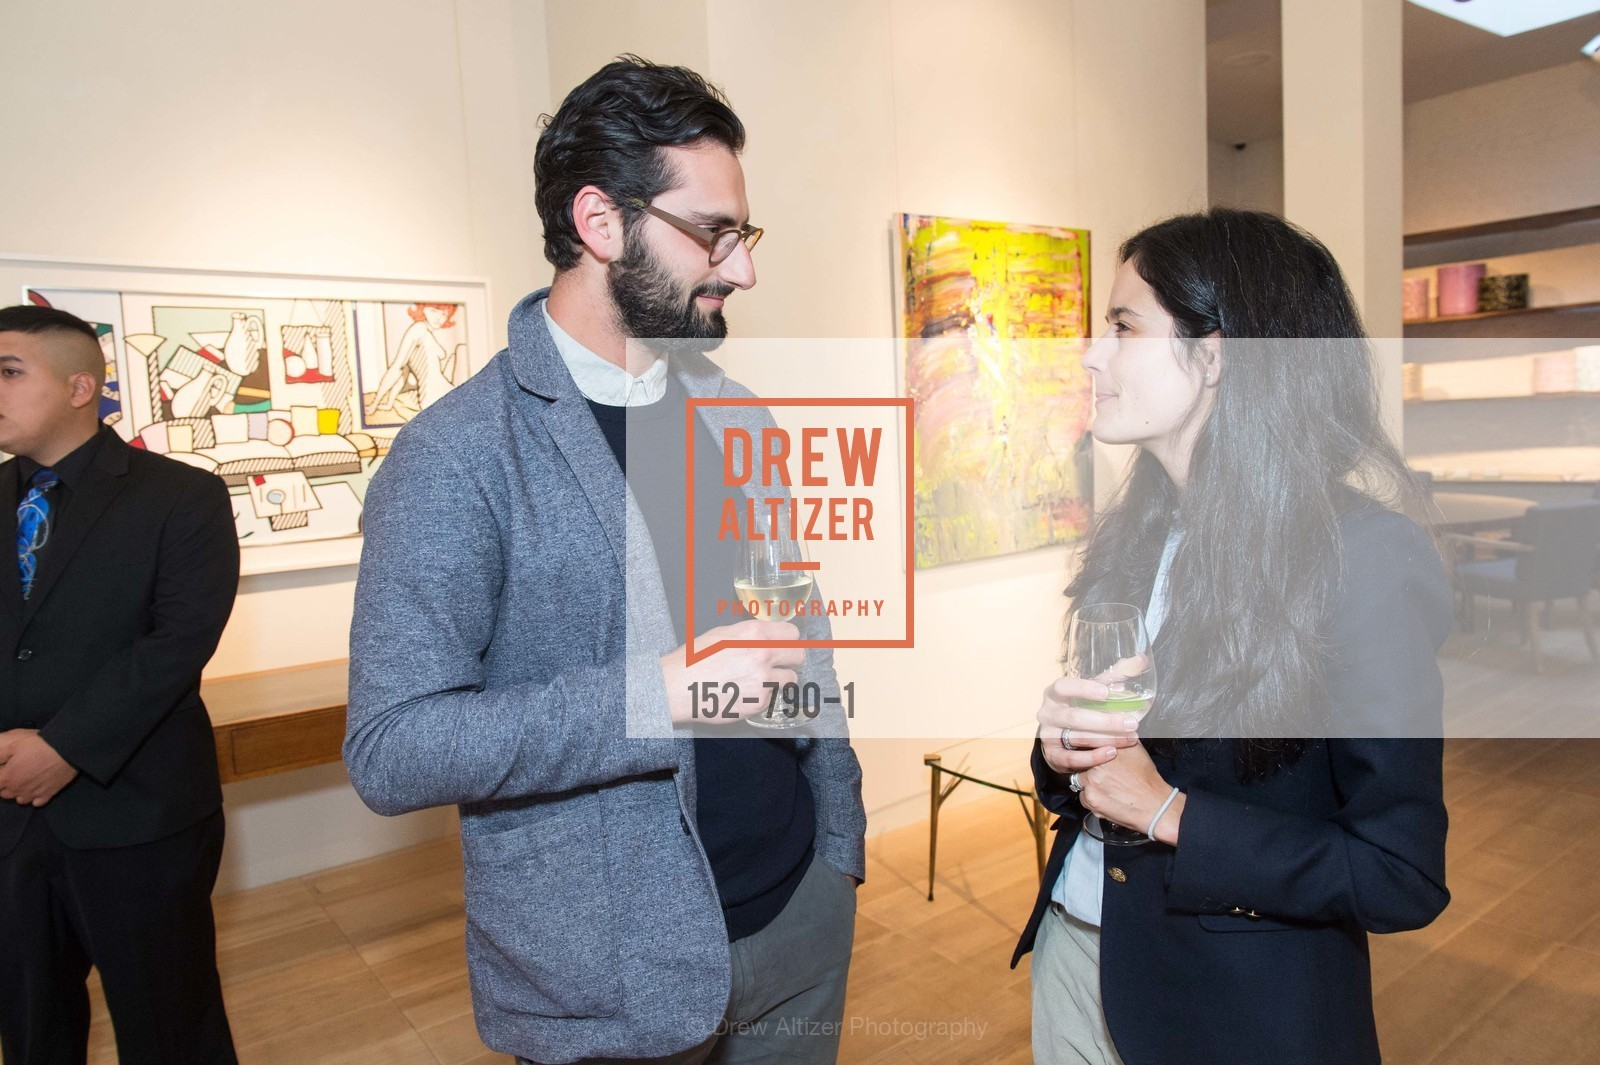 Joseph Becker, Florie Hutchinson, Post War and Contemporary Preview at HEDGE GALLERY, US, April 16th, 2015,Drew Altizer, Drew Altizer Photography, full-service event agency, private events, San Francisco photographer, photographer California